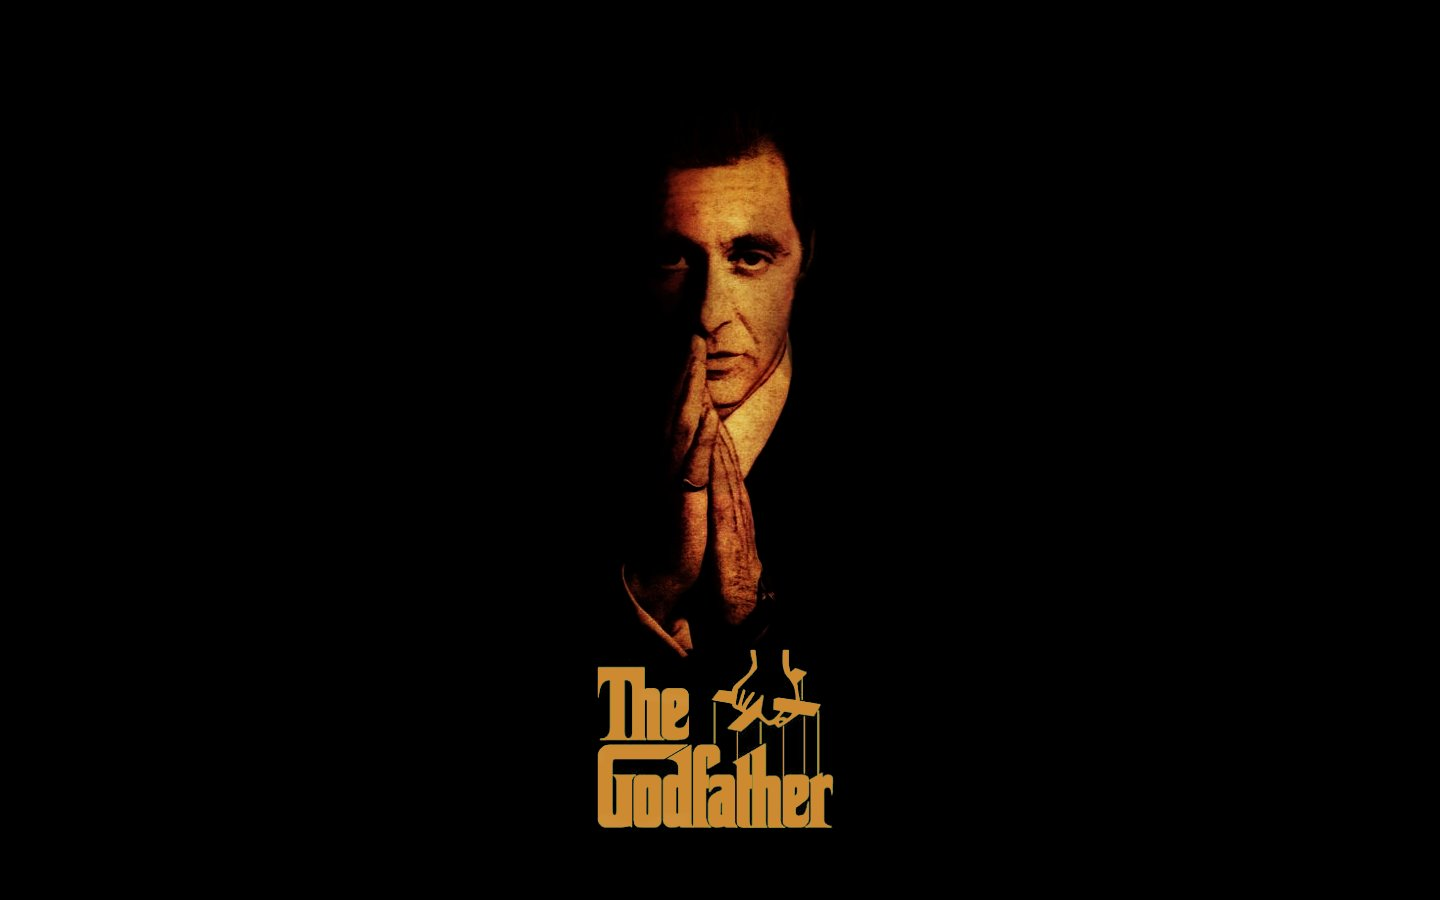 The Godfather 2 Wallpaper